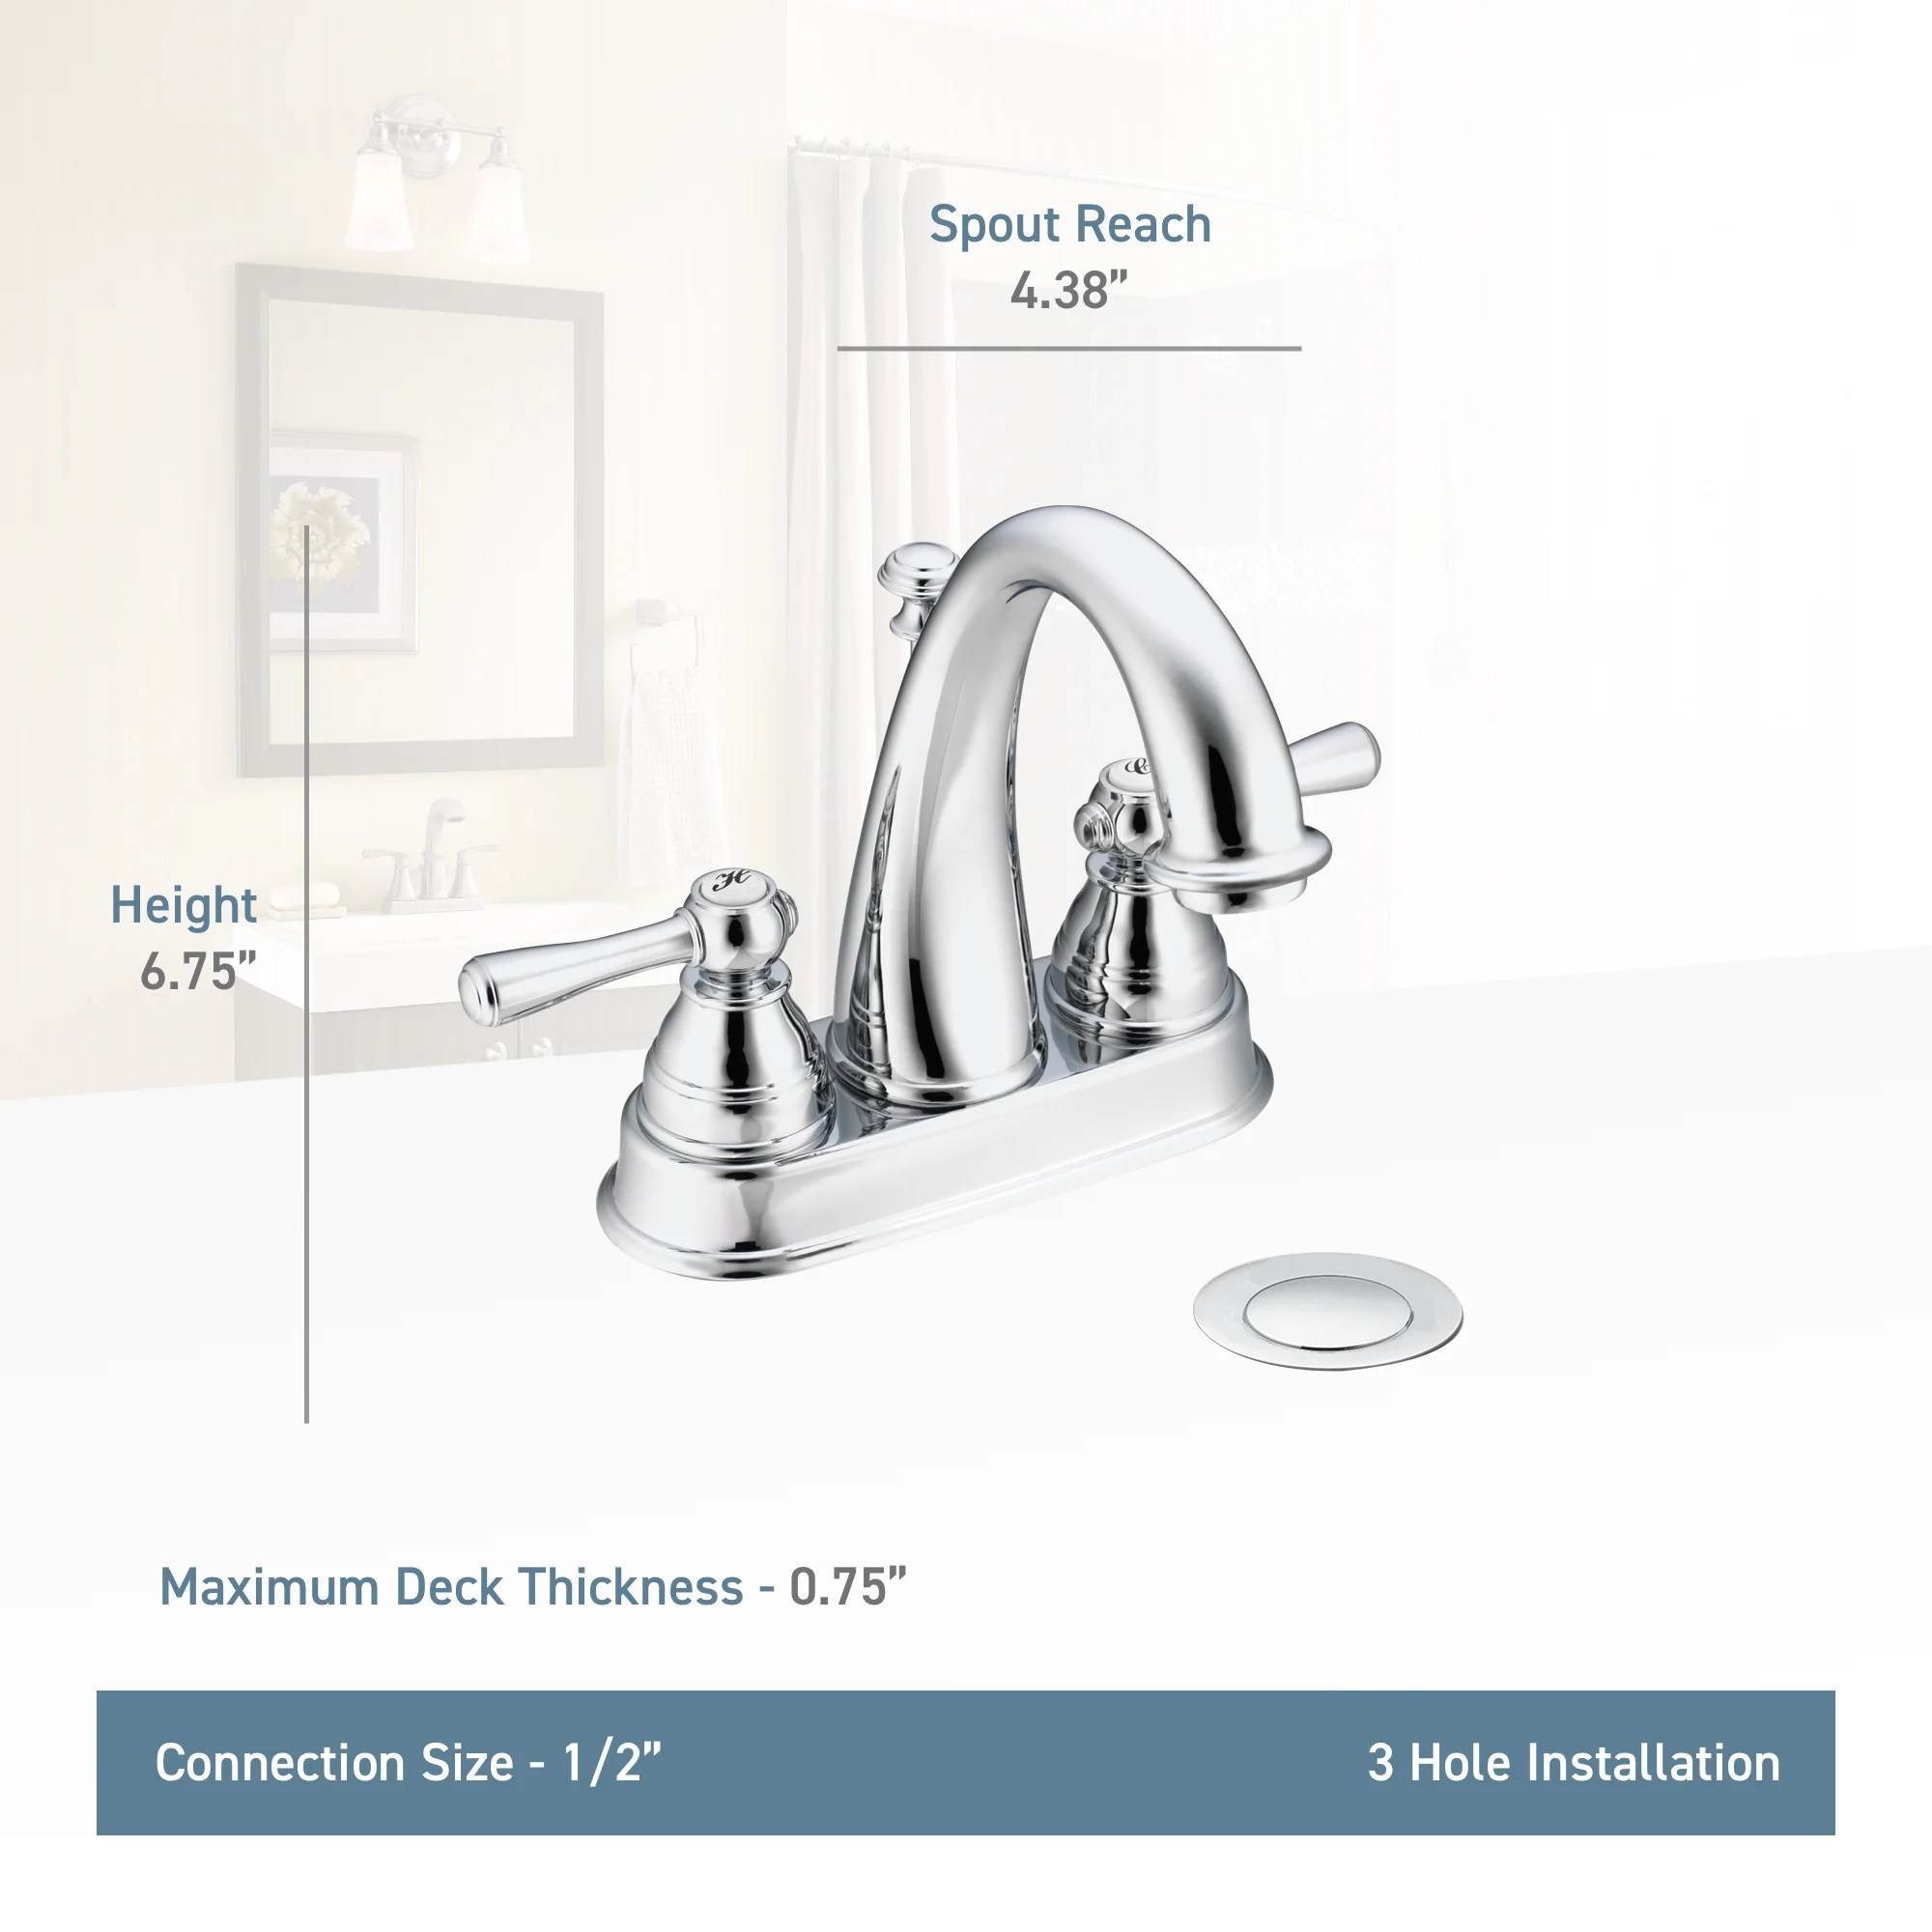 Moen Kingsley Bathroom Faucet Details About Moen Kingsley Two Handle Centerset High Arc Bathroom Faucet